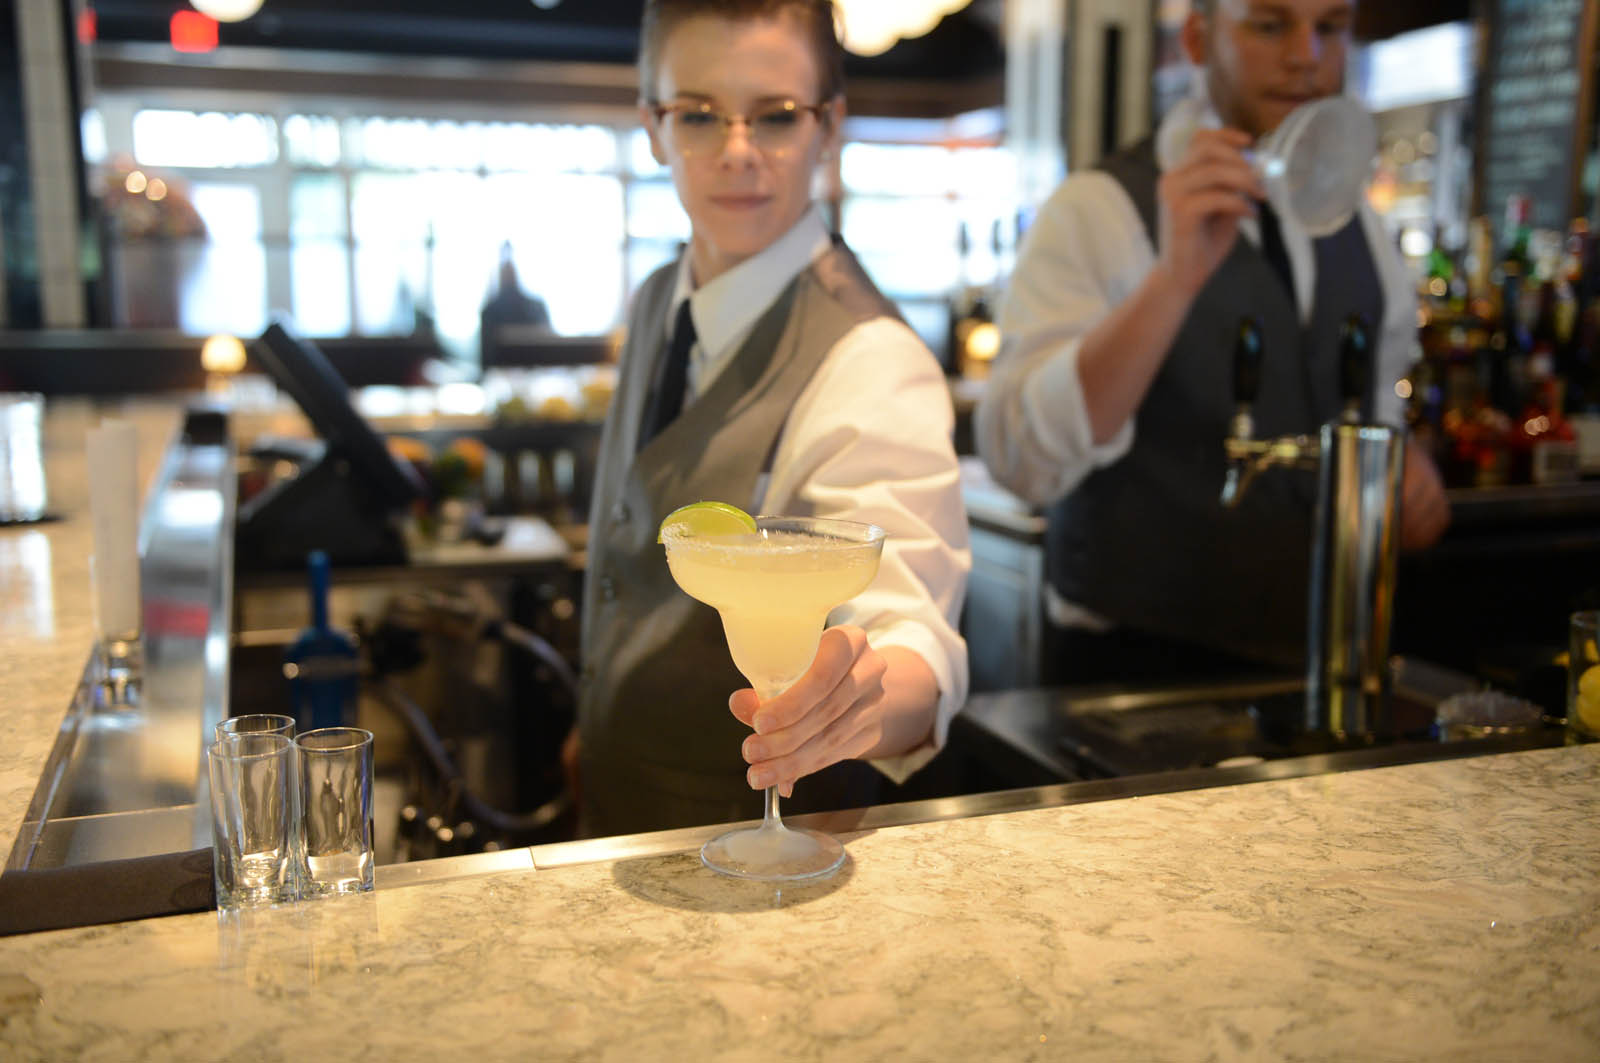 A bartender serving a delicious drink